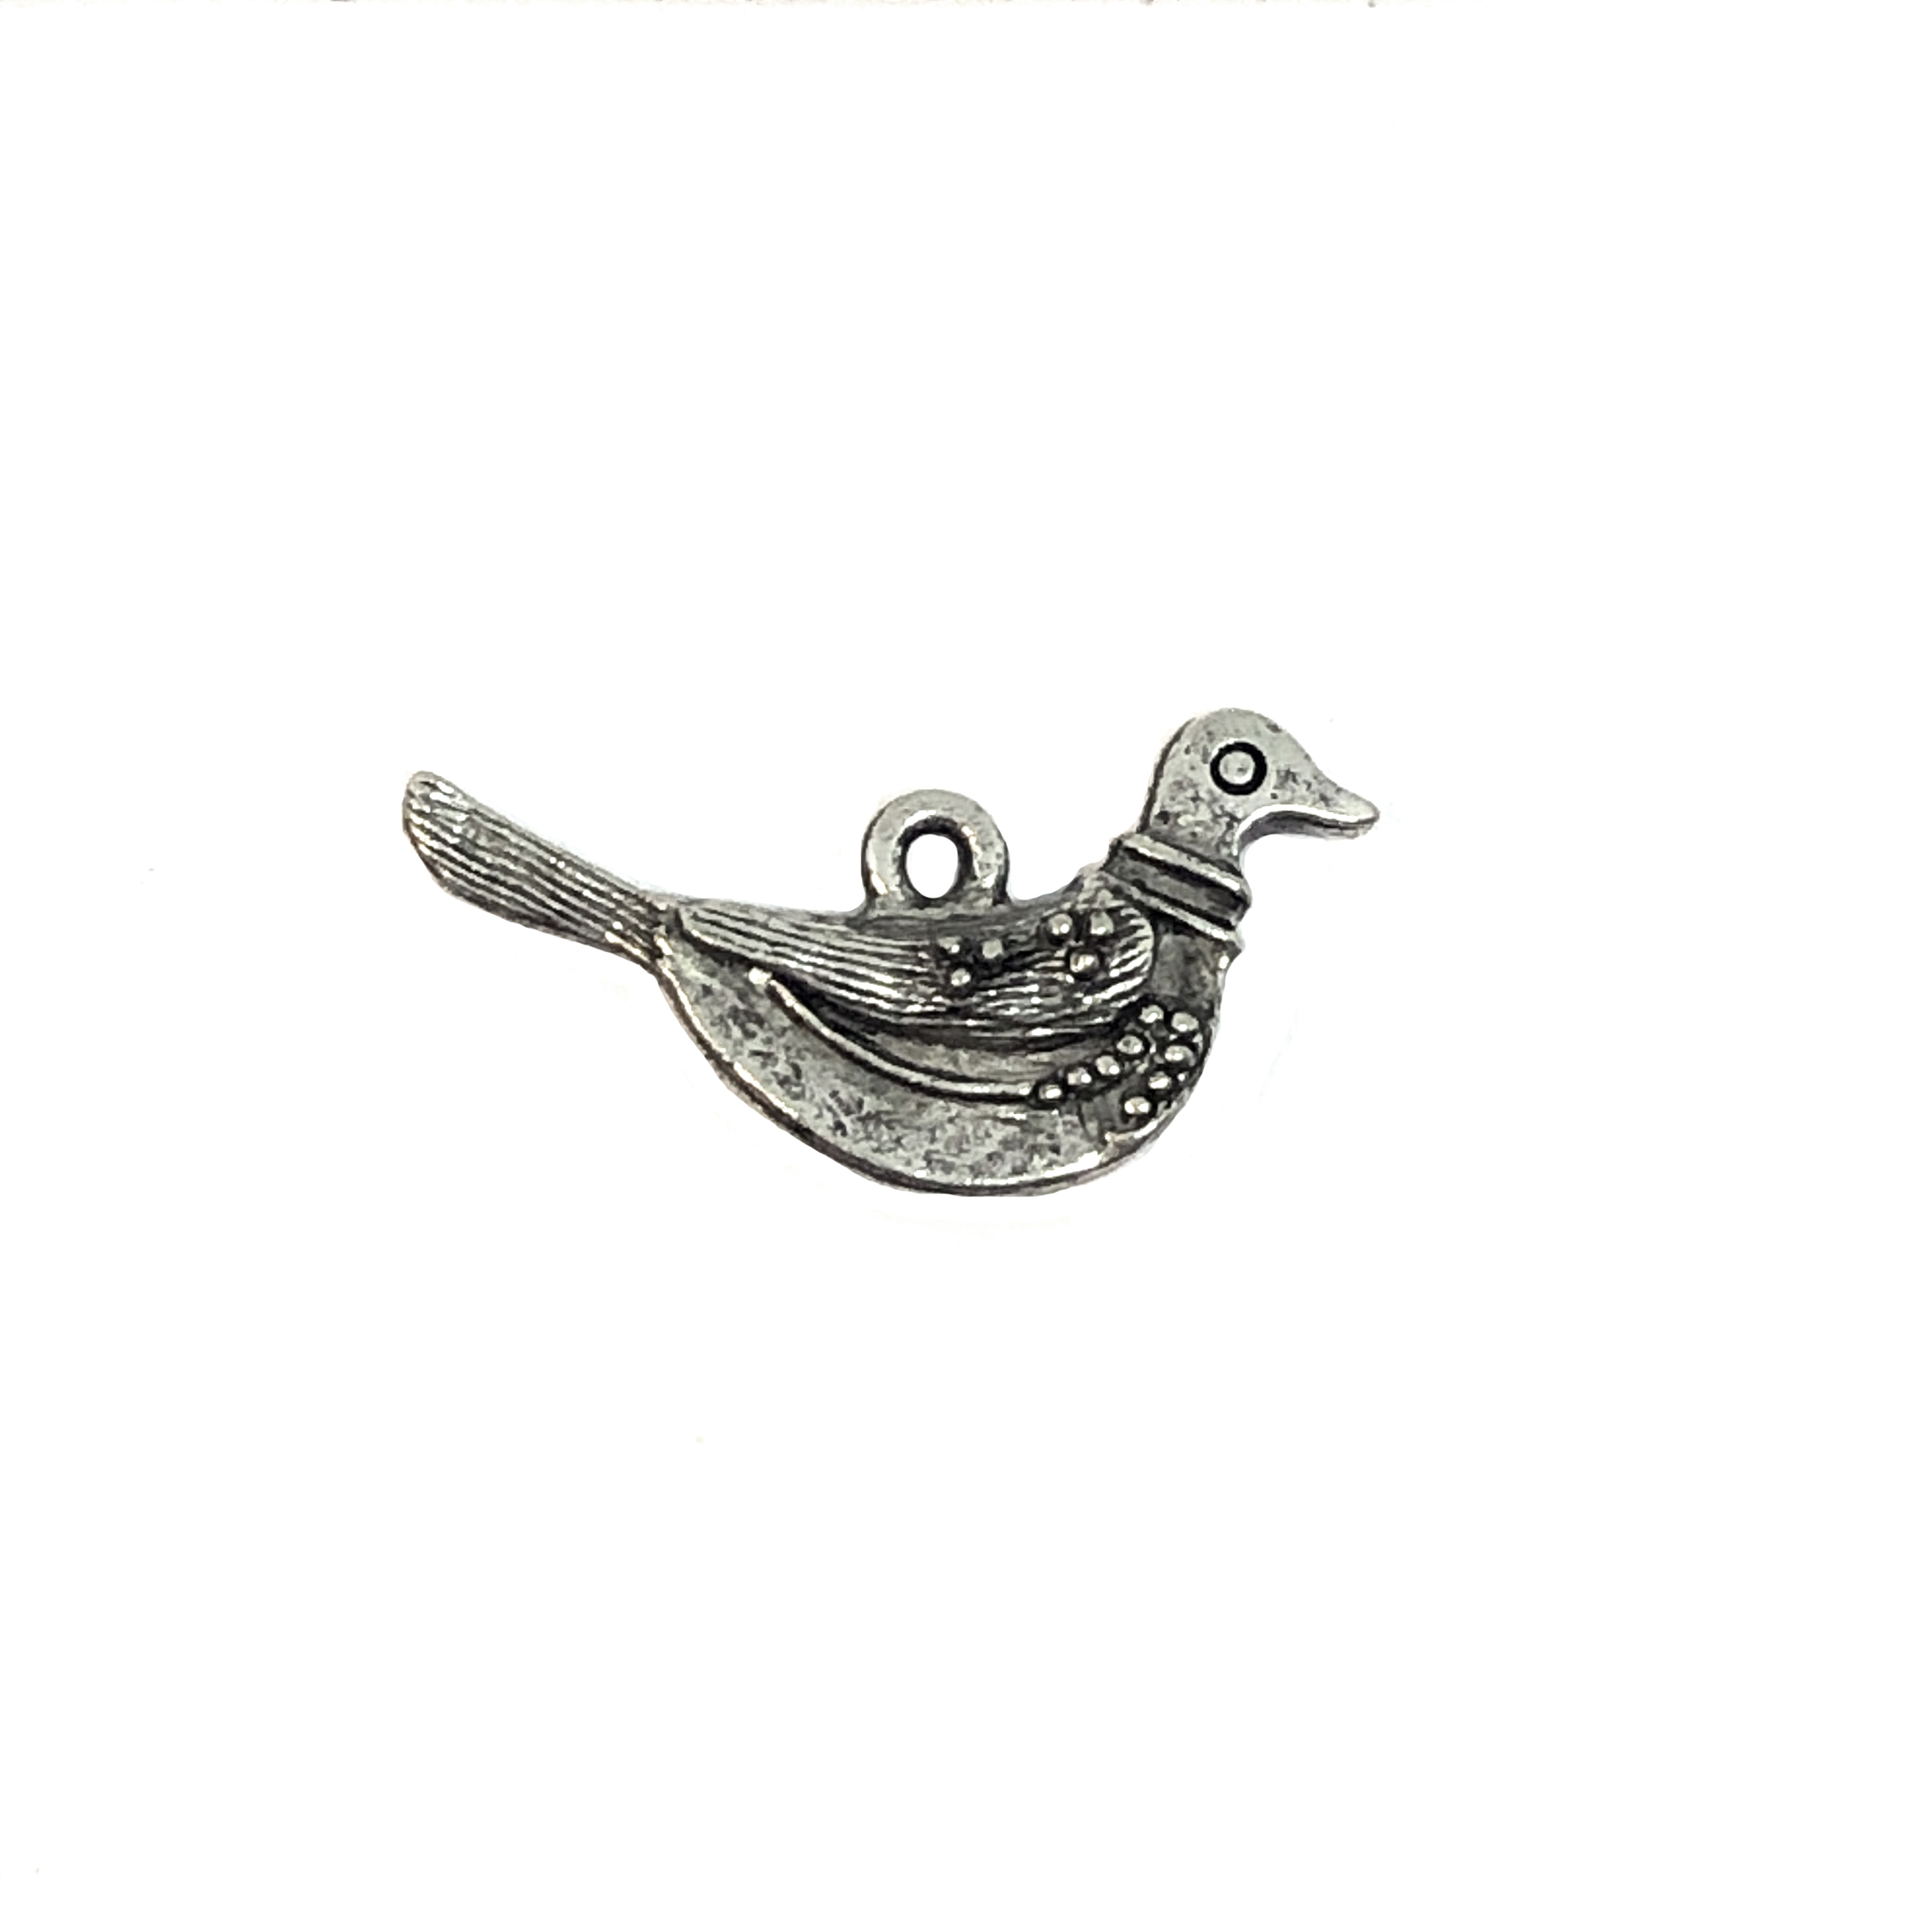 bird charm, old silver pewter, lead free pewter, B'sue by 1928,  vintage jewelry parts, pewter jewelry parts, nickel free, us made, 1928 company, B'sue Boutiques, vintage supplies, jewelry supplies, pewter,  birds,charm, 01002